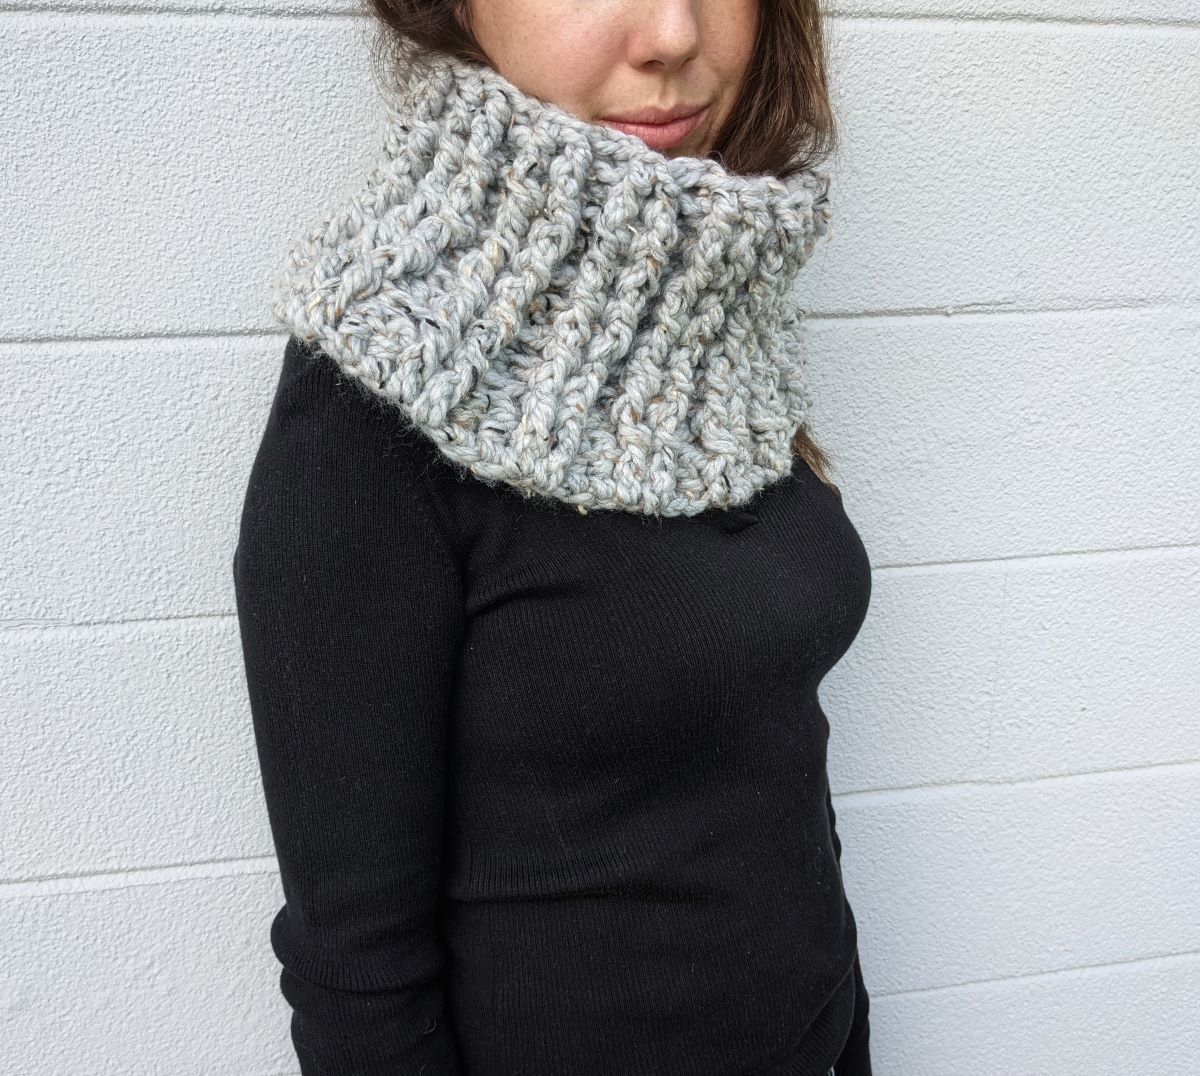 model wearing a chunky crochet cowl with a long sleeve black top